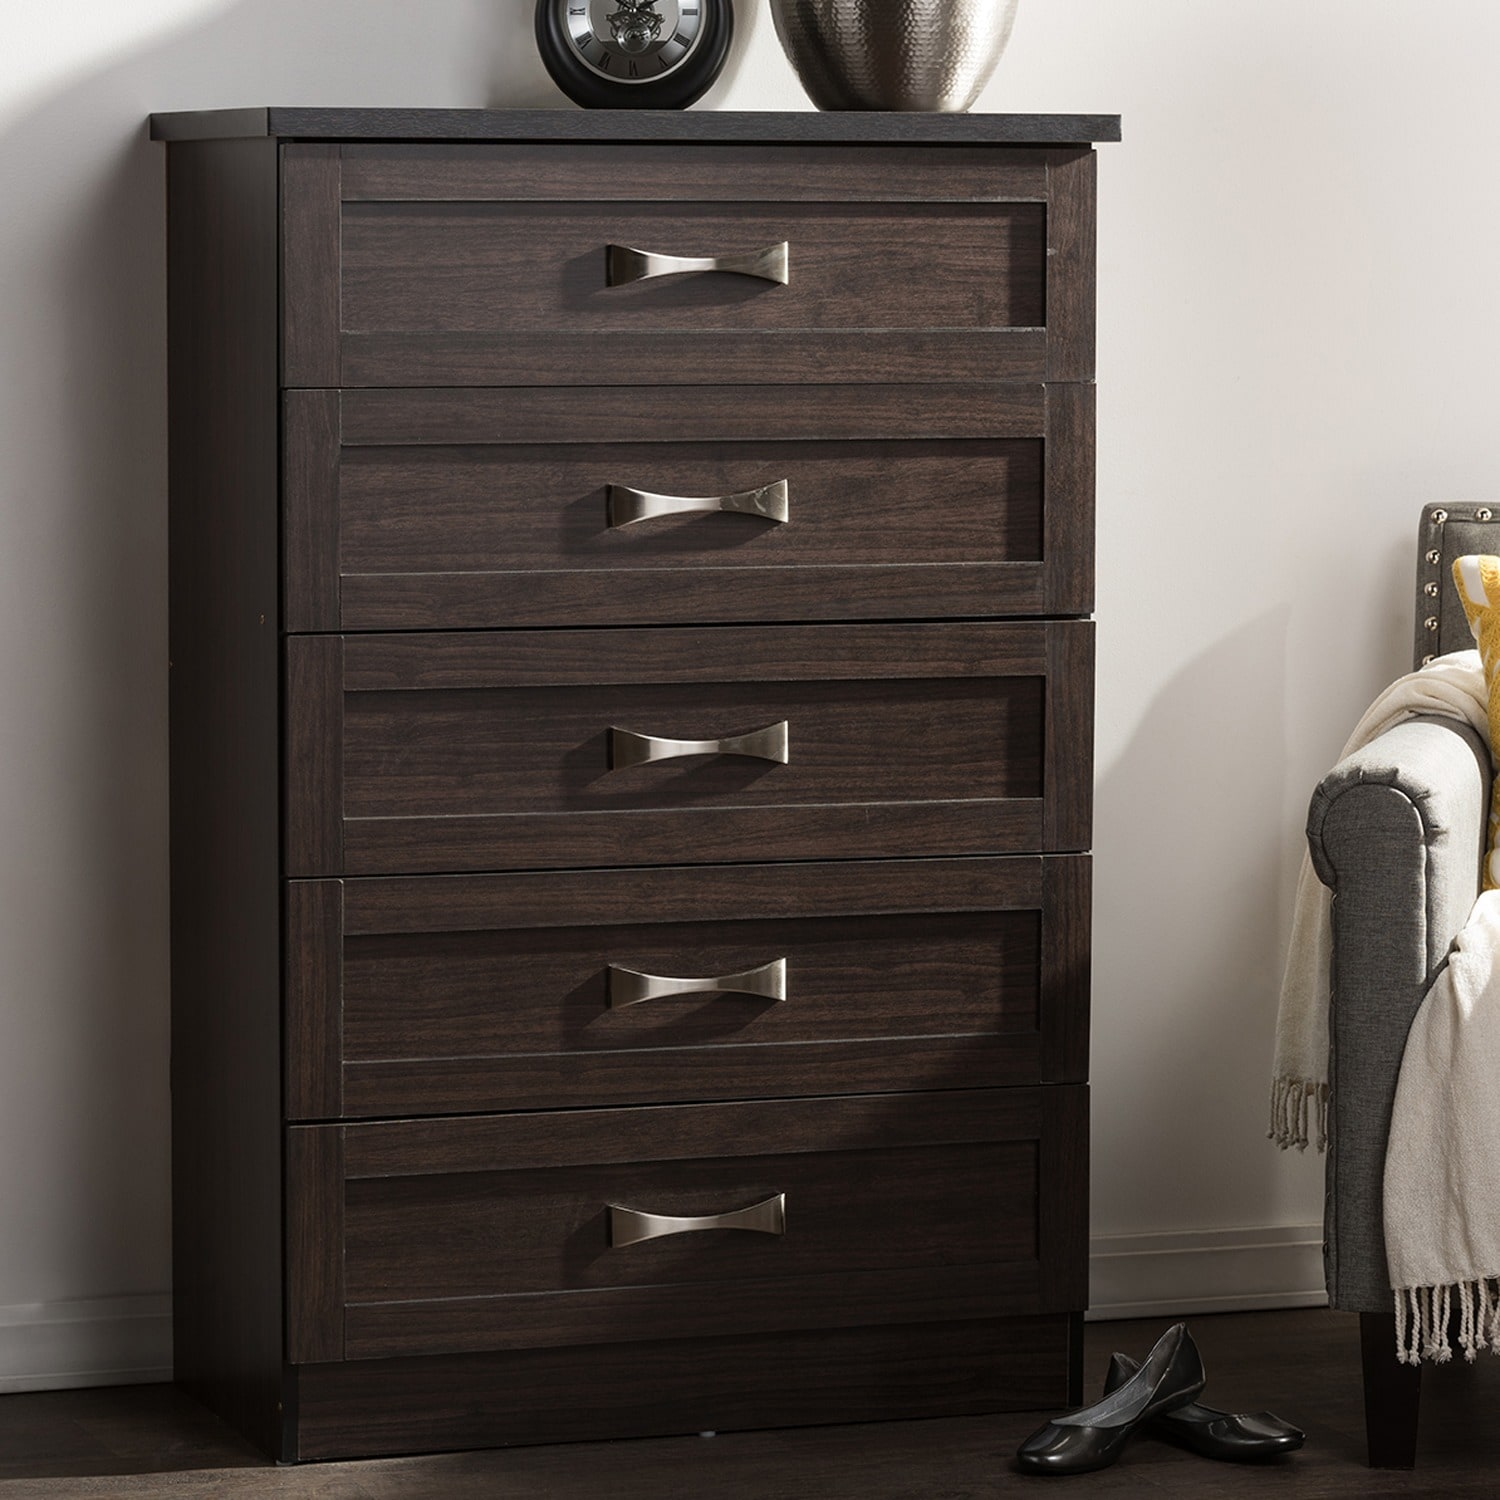 Clay Alder Home Brownville Modern and Contemporary 5-drawer Dark Brown Finish Wood Tallboy Storage & Shop Clay Alder Home Brownville Modern and Contemporary 5-drawer ...